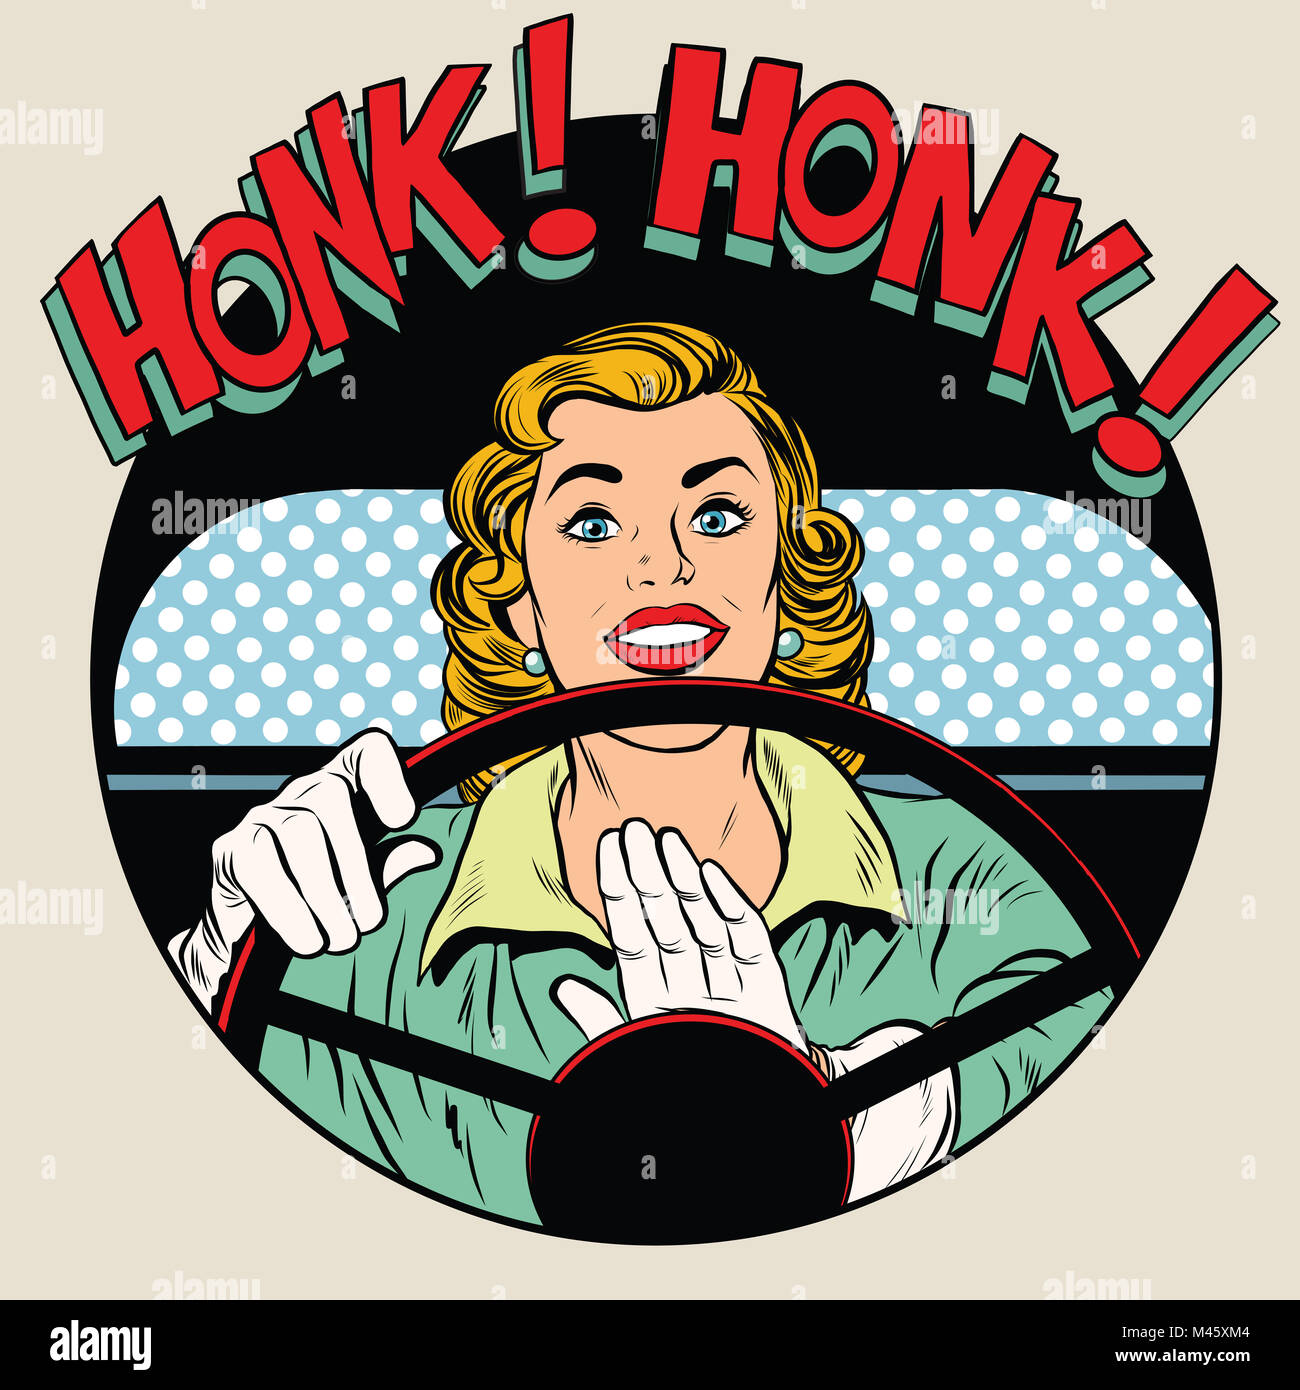 honk vehicle horn driver woman - Stock Image